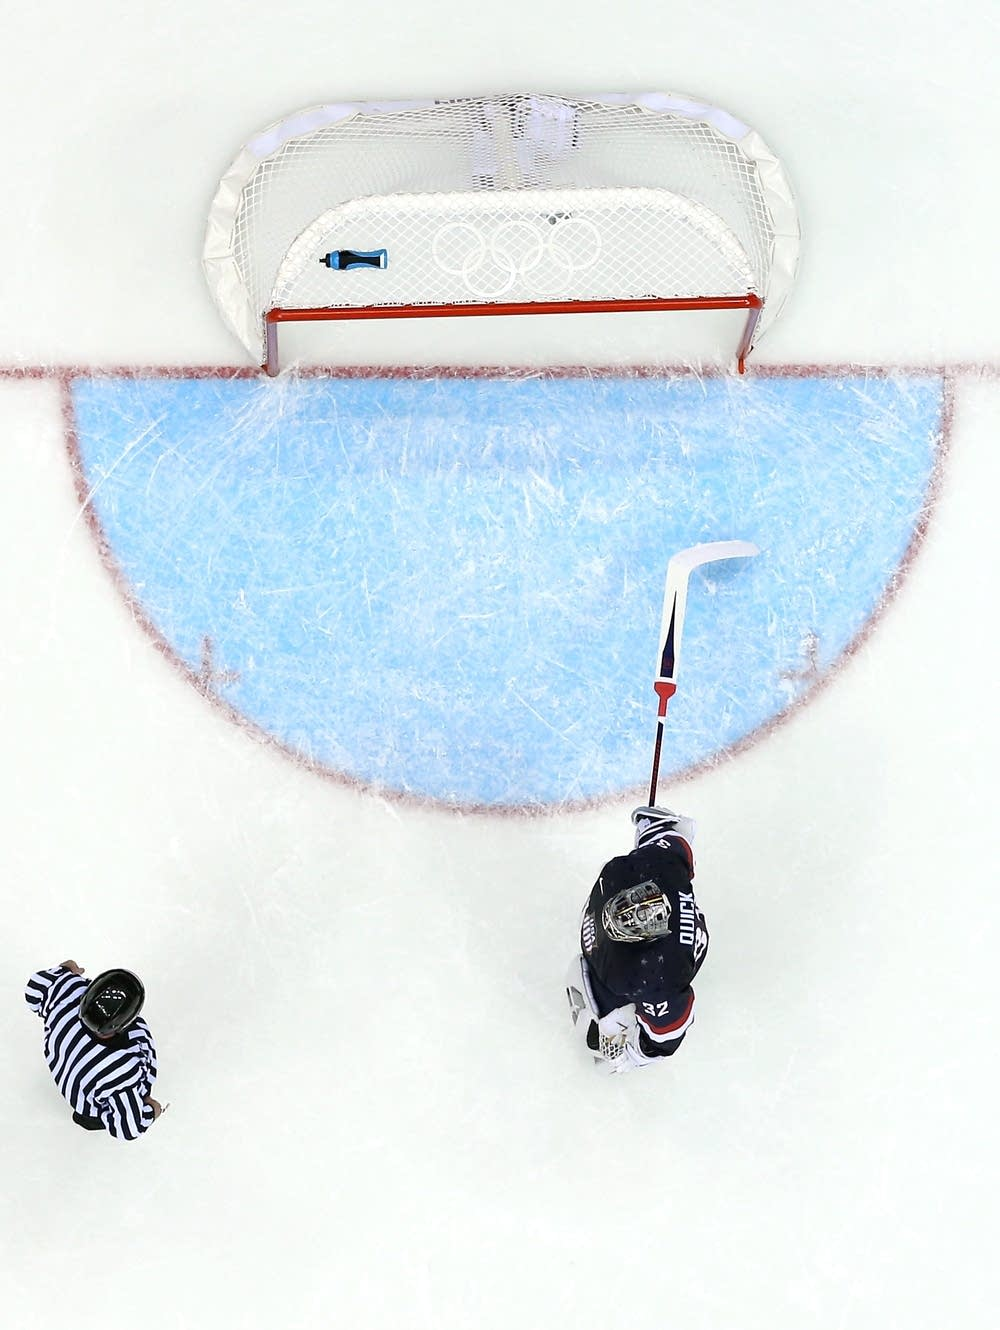 A referee checks the net